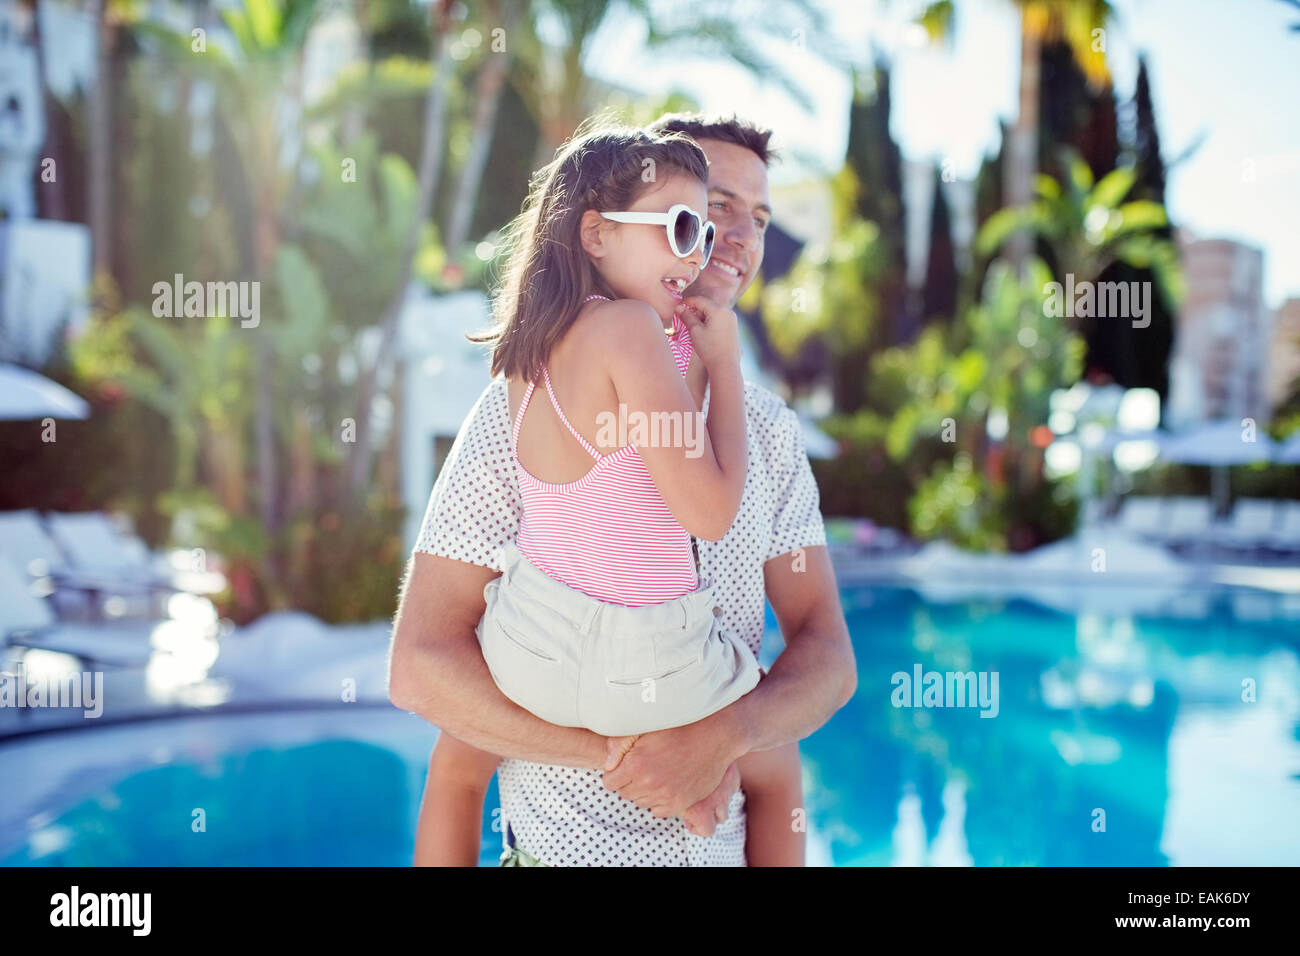 Man carrying his daughter by swimming pool - Stock Image